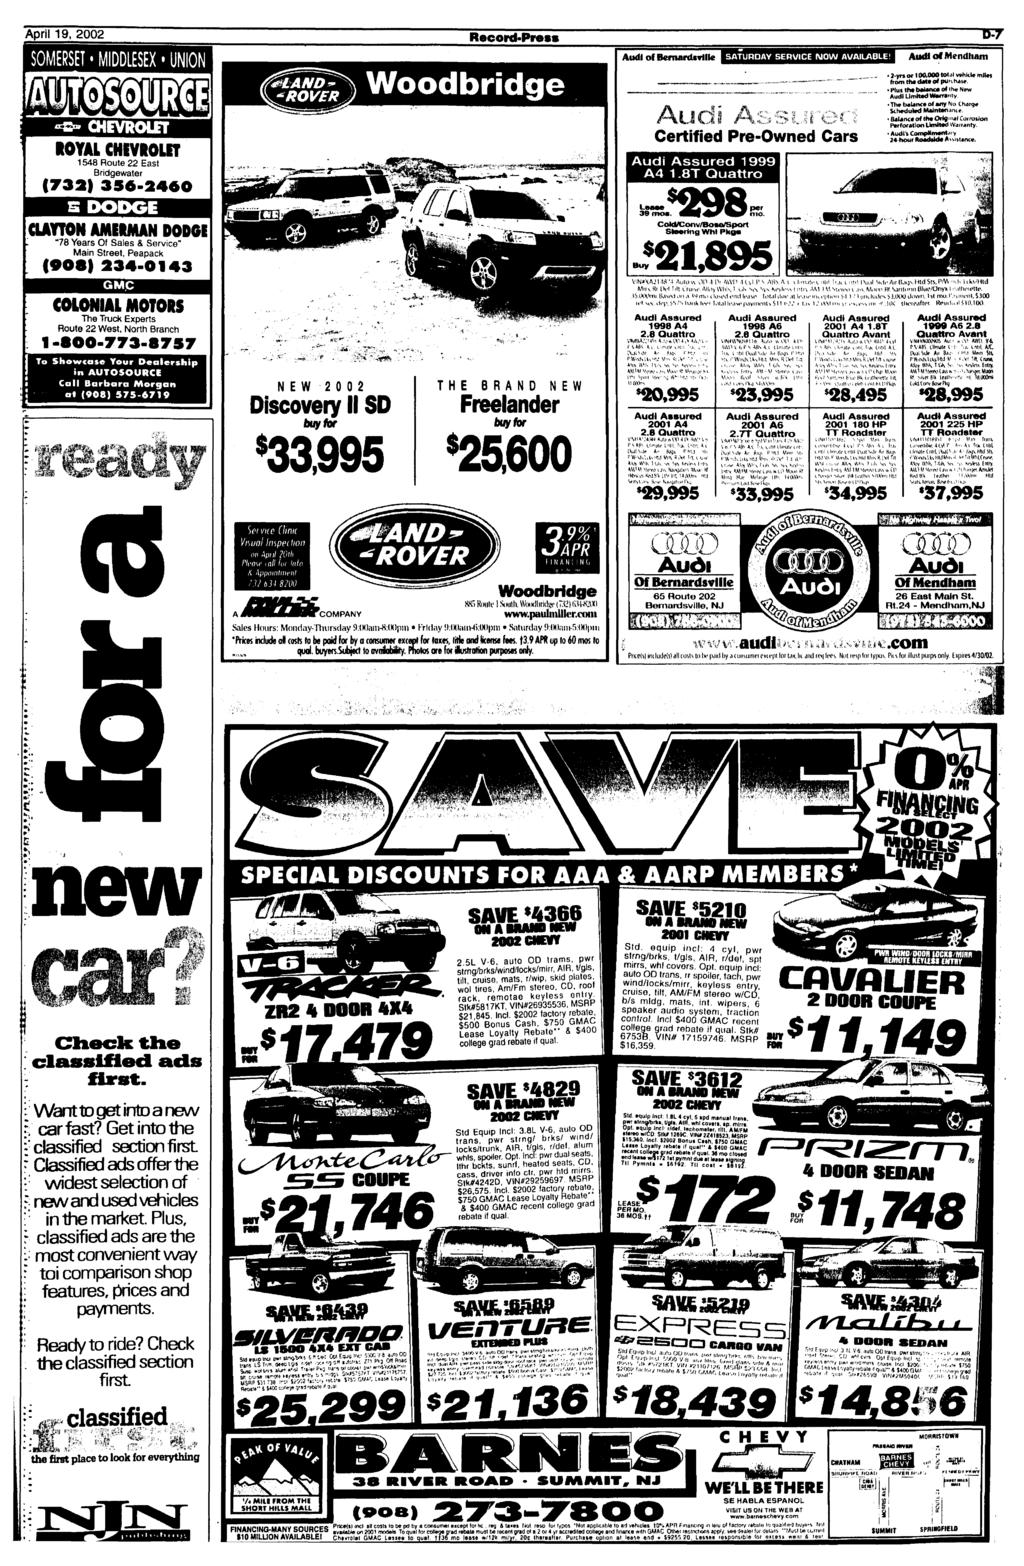 An Duped In Area Wide Scam Pdf Air Conditioning Four Season System Vacuum Diagram C K Models For 1979 Gmc Light Duty Truck Series 10 35 April 19 2002 Record Press Tjt Royal Chevrolet 1548 Route 22 East Bridgewater 732